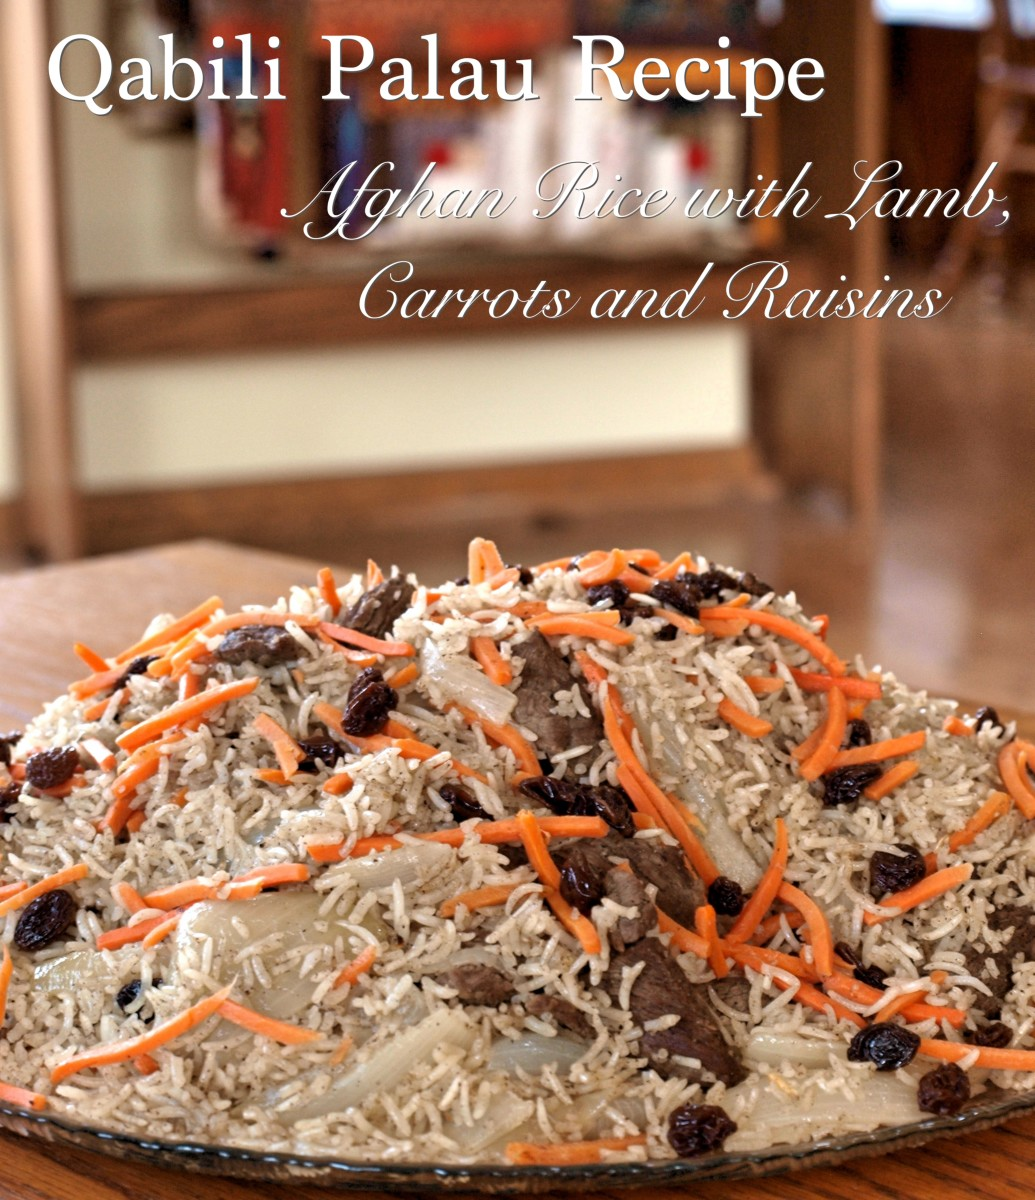 Kabuli pulao recipe afghan rice with lamb carrots raisins kabuli pulao recipe afghan rice with lamb carrots raisins gluten free delishably forumfinder Image collections